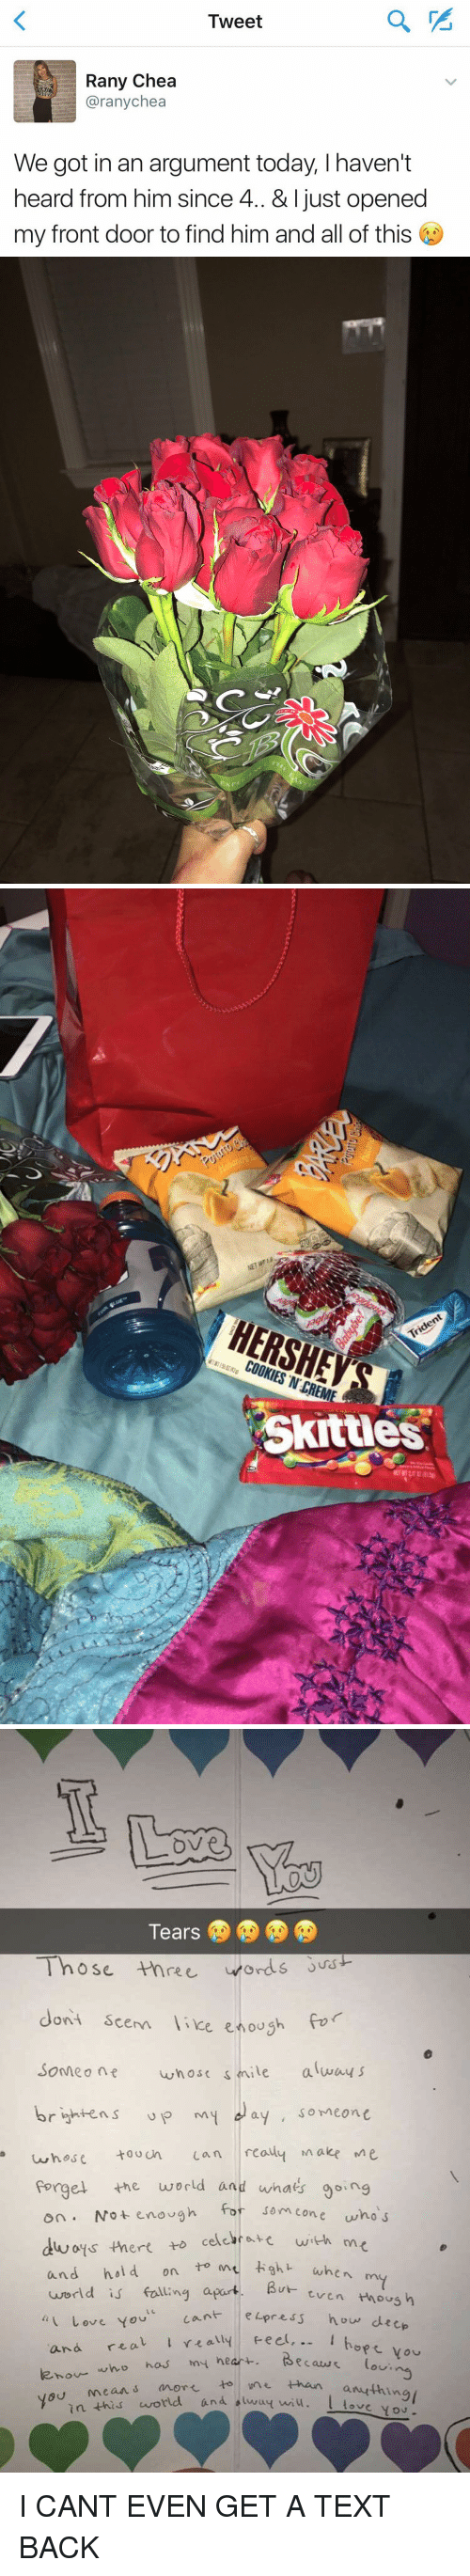 Cookiness: Tweet  Rany Chea  arany chea  We got in an argument today, haven't  heard from him since 4. & just opened  my front door to find him and all of this   C   HERSHEY  COOKIES N CREME  Skittles   ove  Those three words  dont sce  like enough fo  Someone who sc  s mile alway s  brightens up my day someone  whose tou un can really make Me  Forget the world and whats ooing  fo  som cone who  on. Not enough  dways there to cele with m  and hold on  to mu ght when  m  world is falling apart  But  even  thous h  cant press how deep  Love you  and real l really feel...  who has my heart.  Secaus tou nen  how  you  mean s a to vnt than  l in this  world and alway wiu. anything/  You I CANT EVEN GET A TEXT BACK